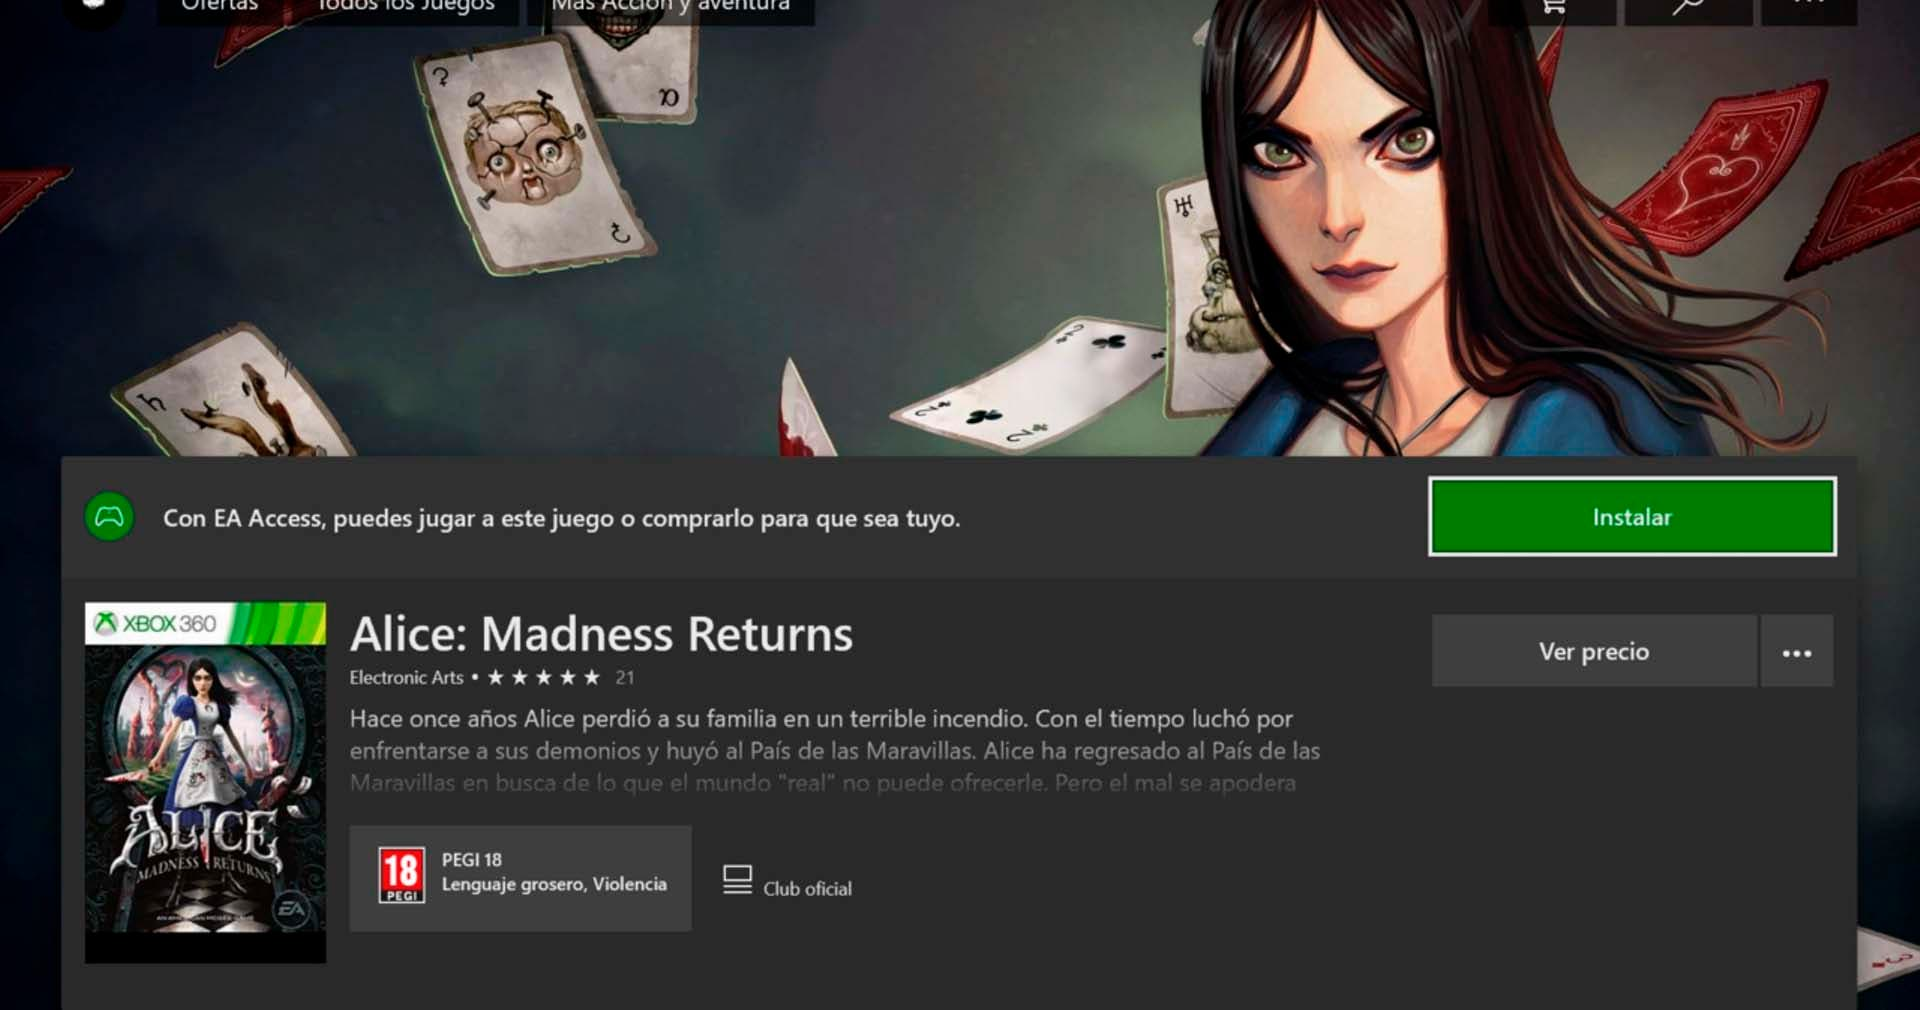 Alice Madness Returns disponible gratis vía EA Access 2